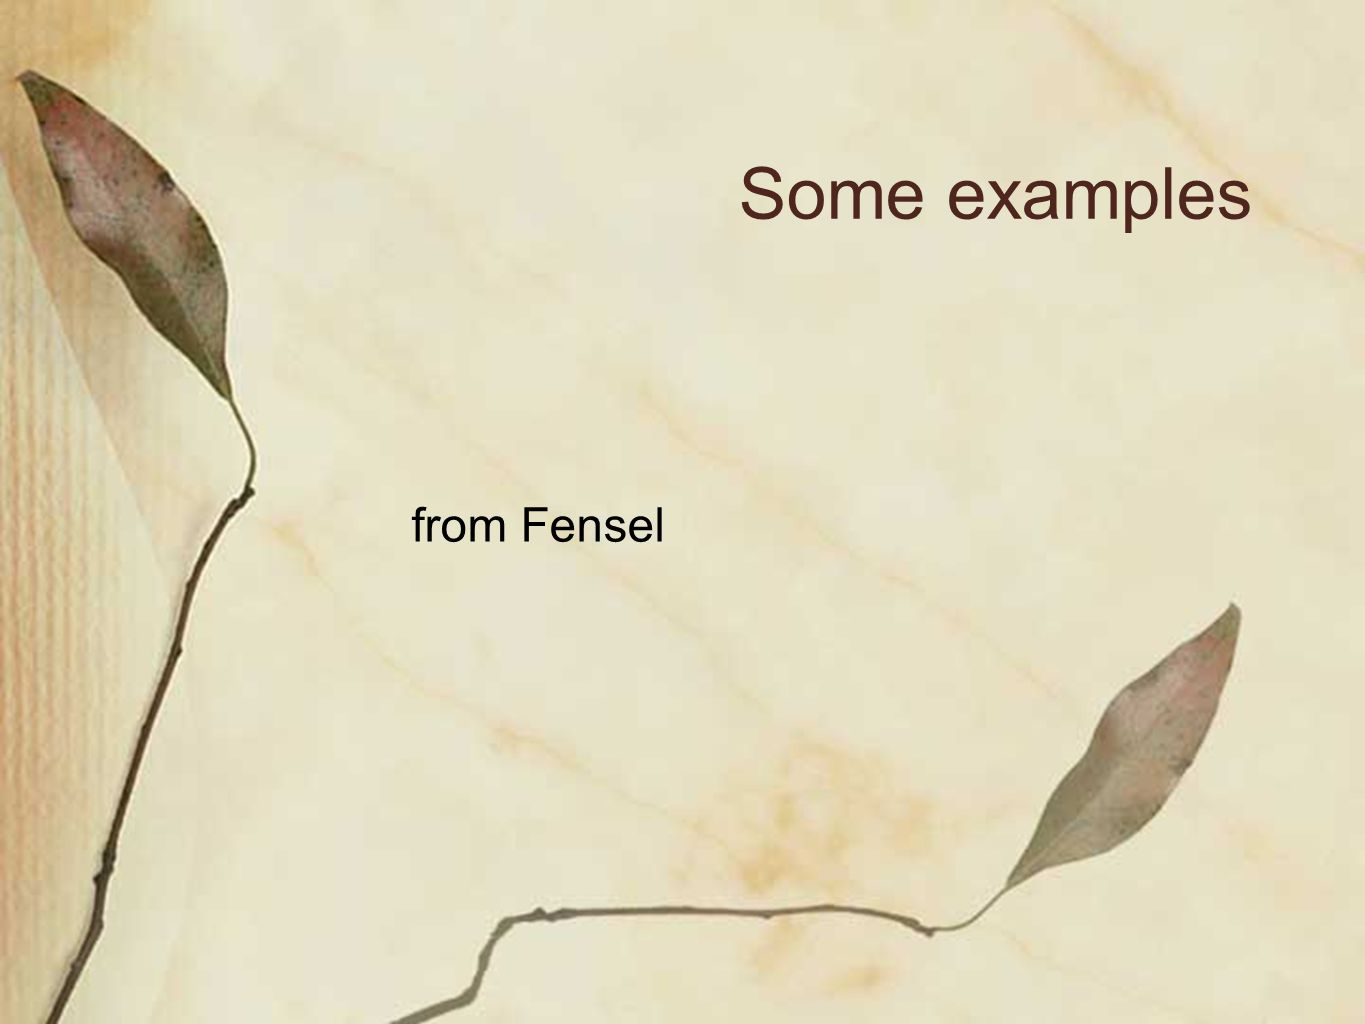 Some examples from Fensel